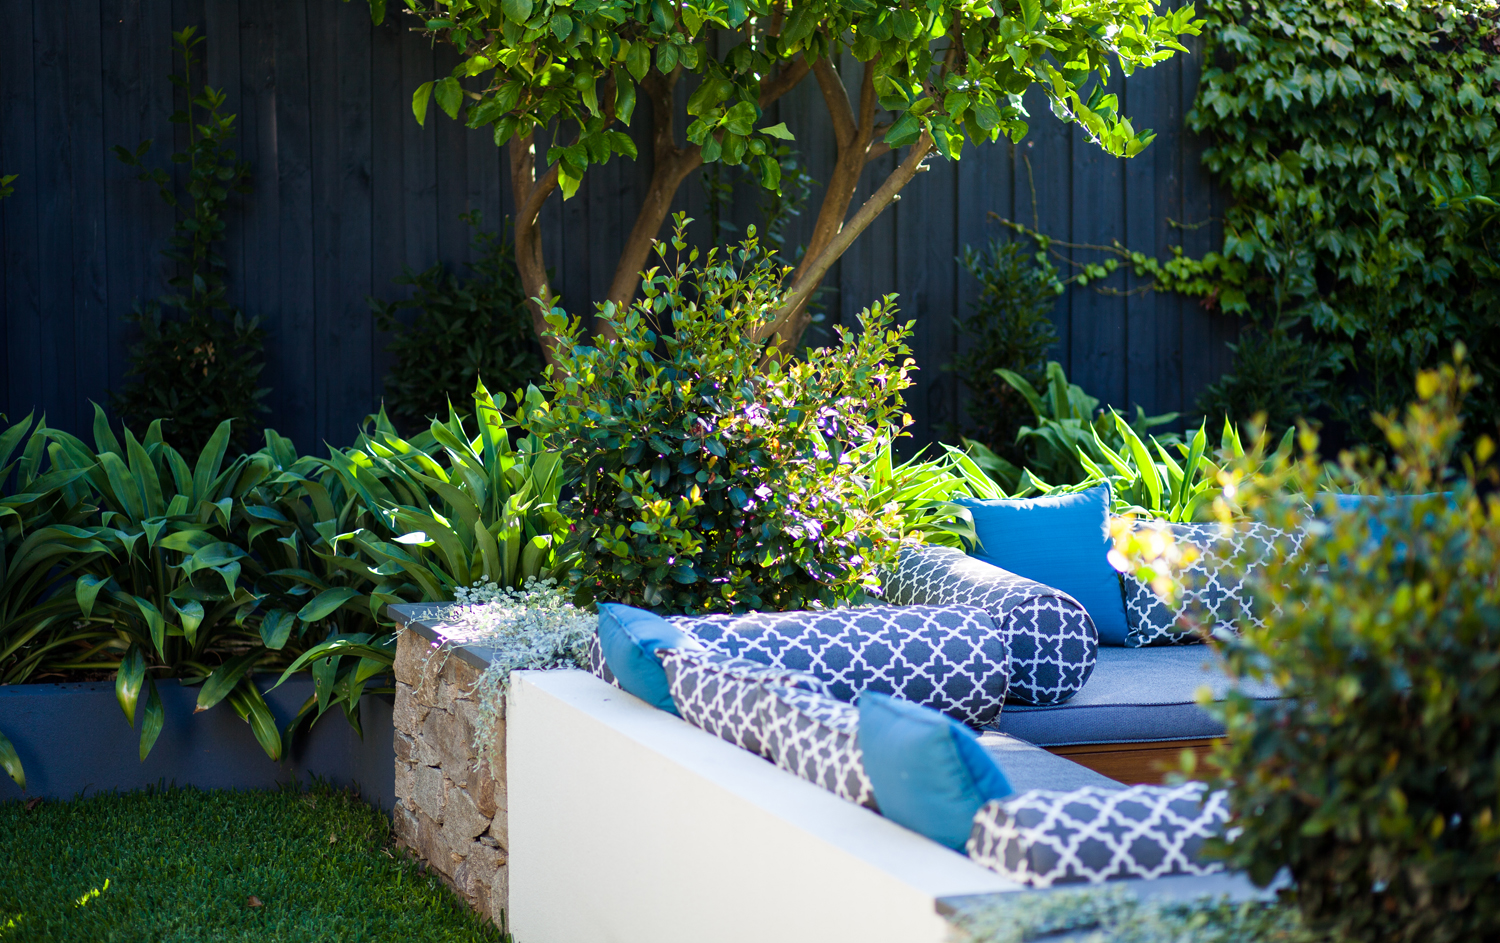 This inner-city Melbourne garden has a new lease on life